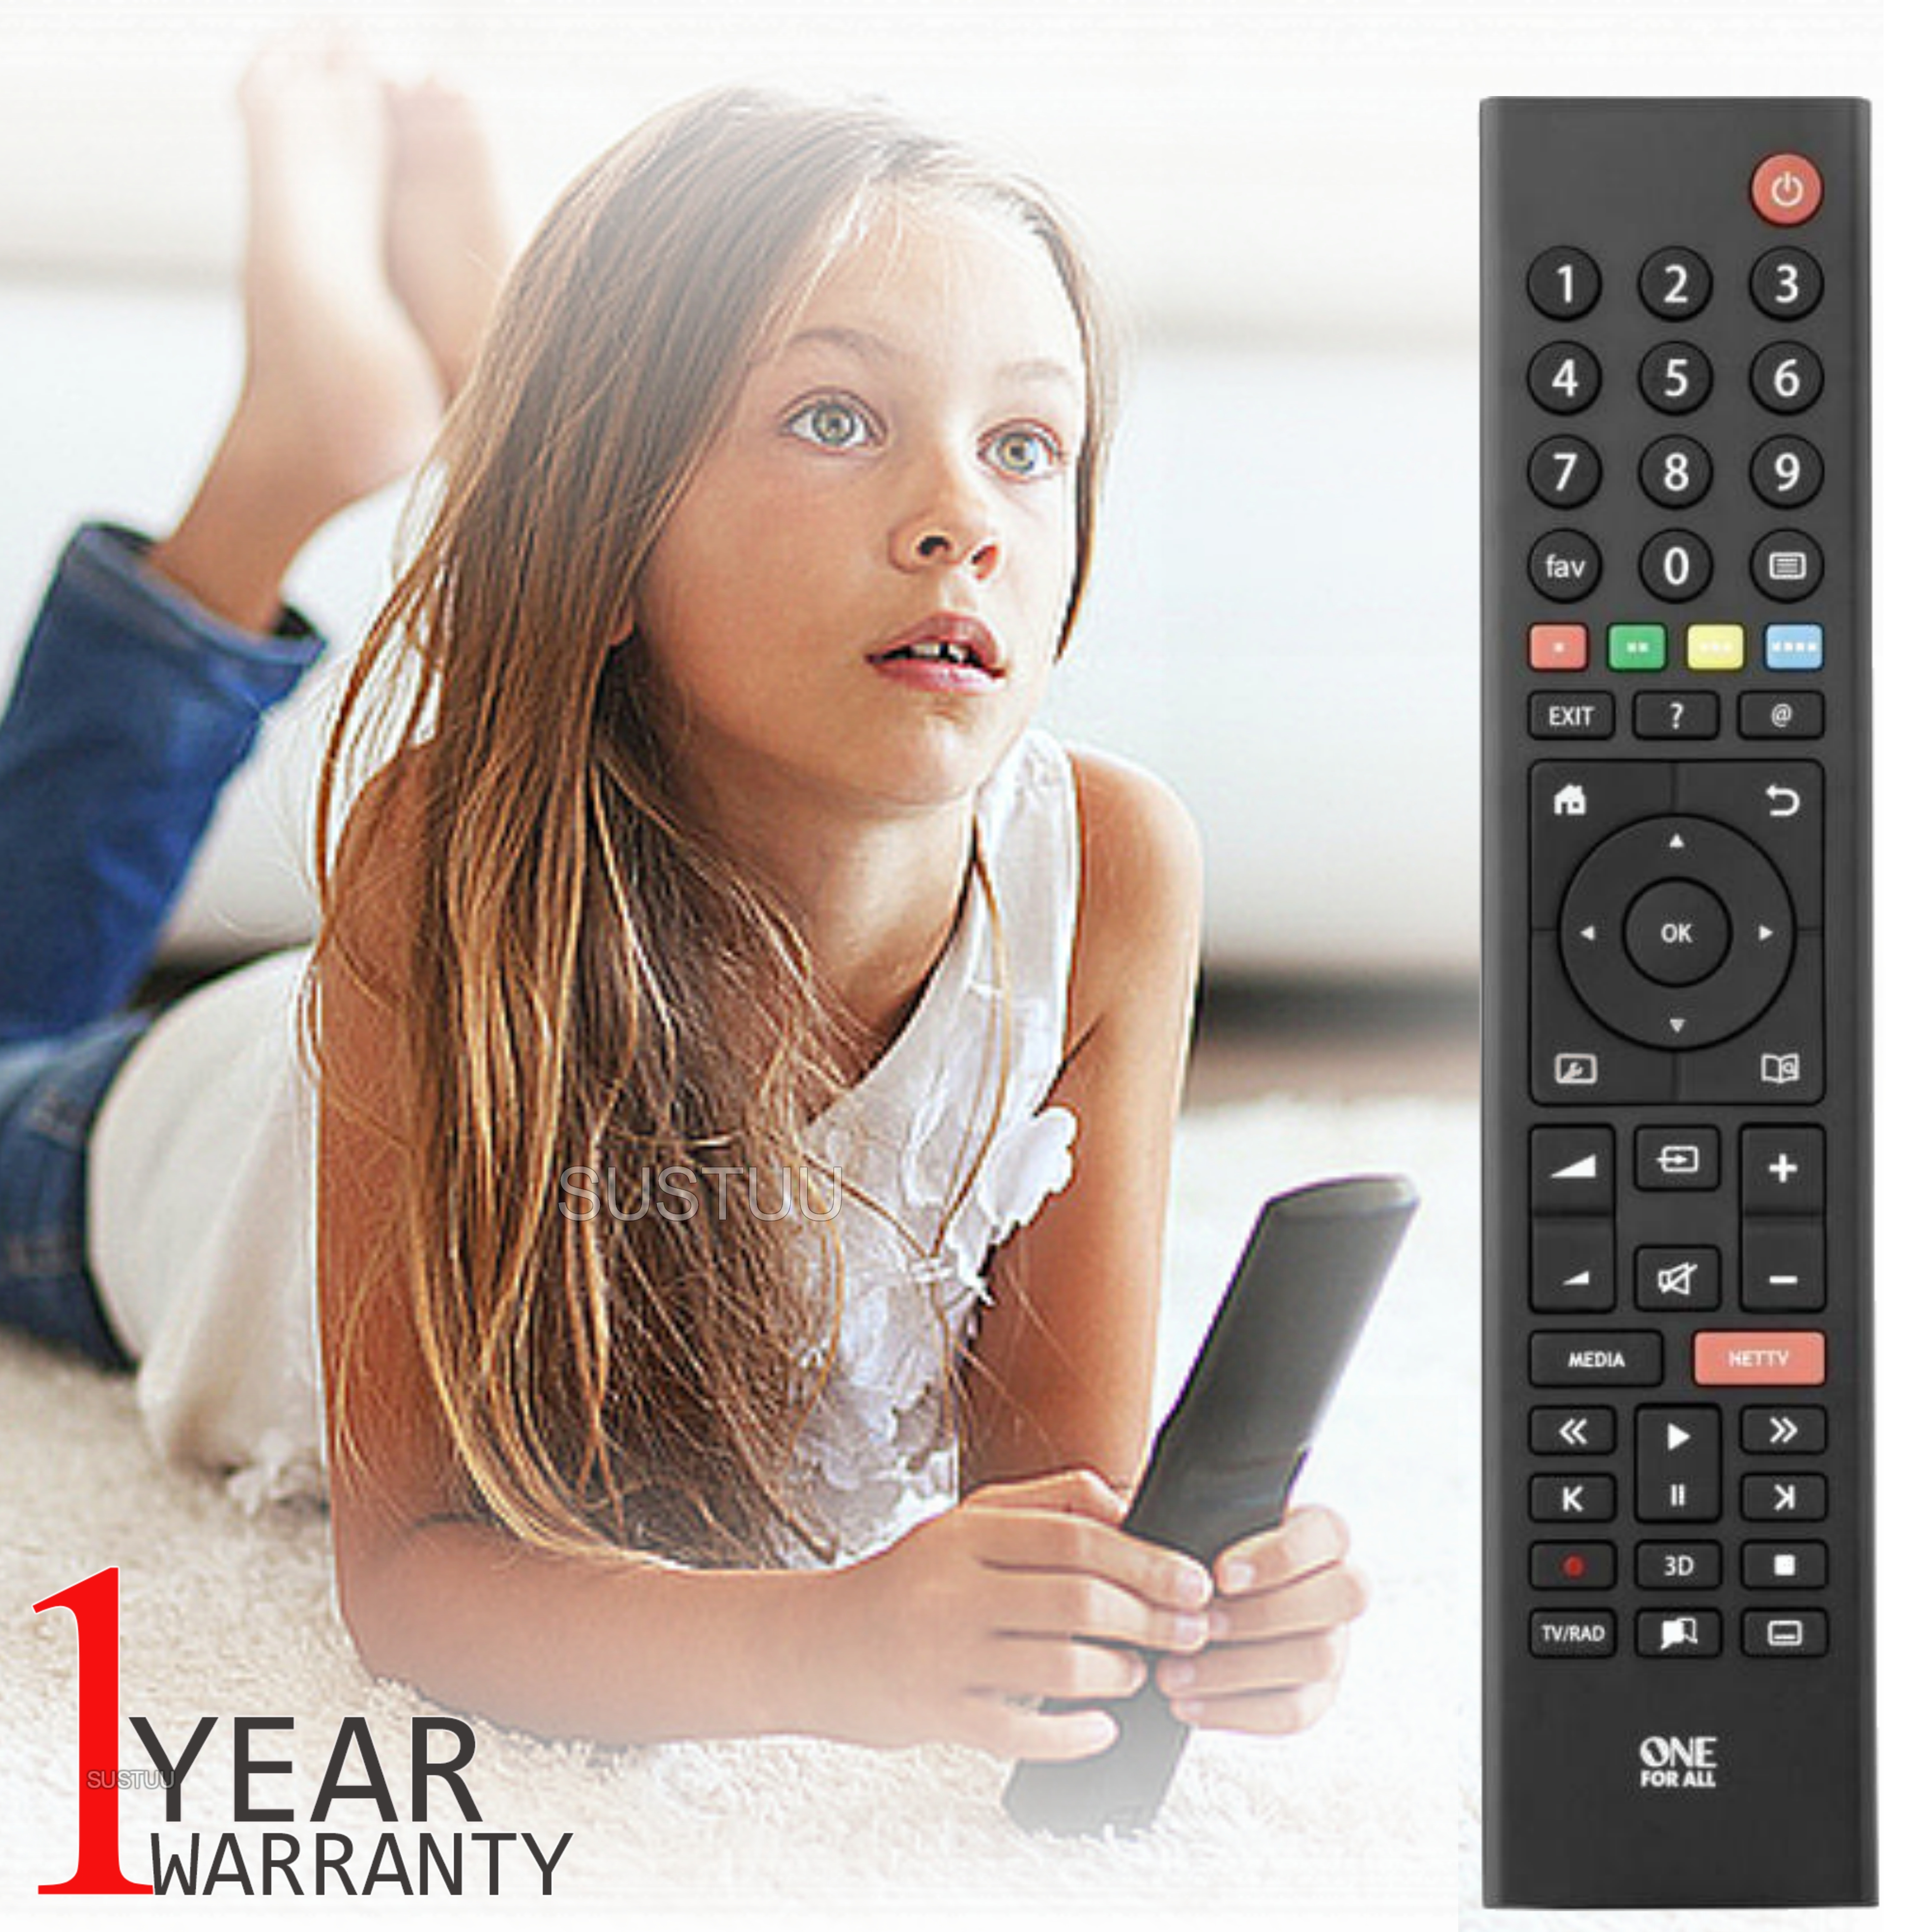 One For All URC1915 Replacement Gurdian TV Remote Control|Plasma-LCD-LED Models|